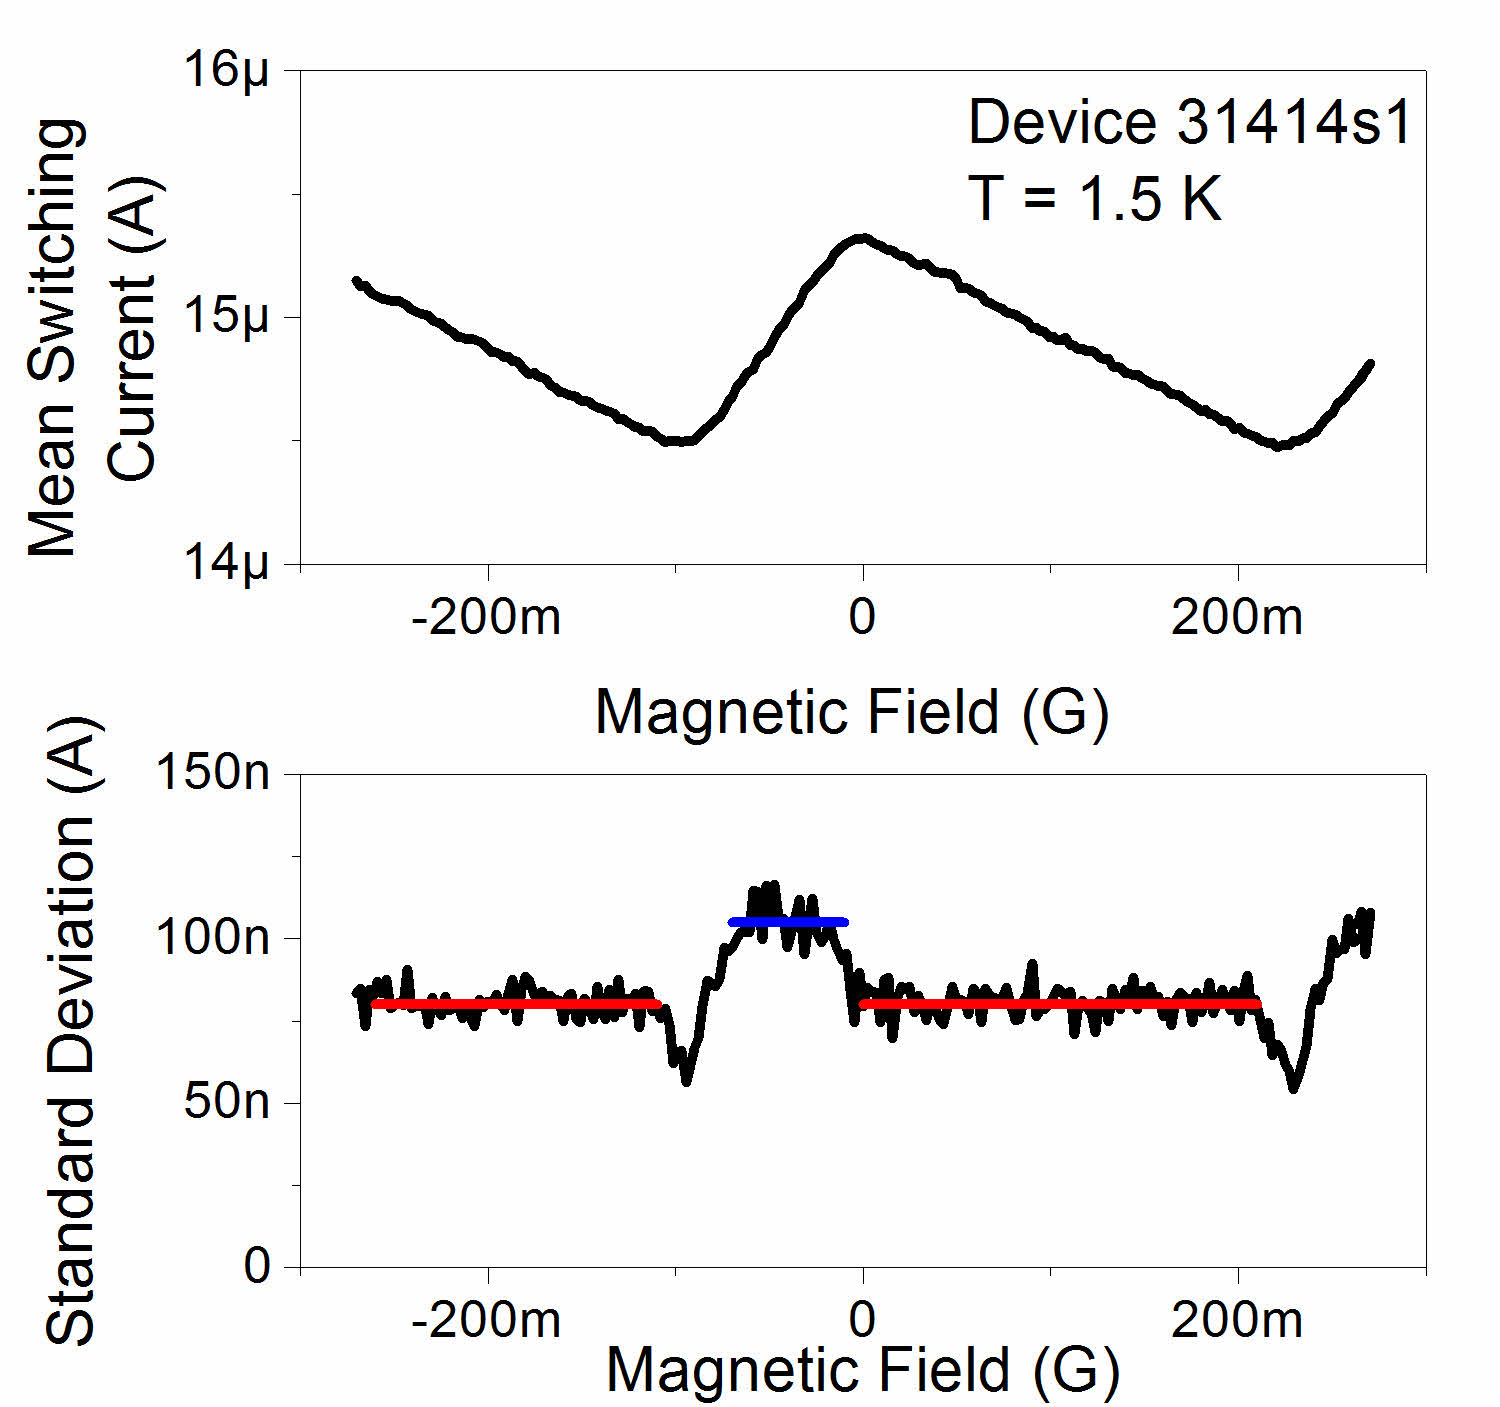 a) The mean of the switching current distribution vs magnetic field for Device 31414s1. Device 31414s1 only shows one switching current branch at each magnetic field. b) The standard deviation of the switching distribution vs magnetic field is a periodic sequence of plateaus. Along each plateau, a switching event is caused by a particular wire reaching its critical current. Horizontal lines in red (at 80 nA) and blue (at 105 nA) have been plotted for reference.